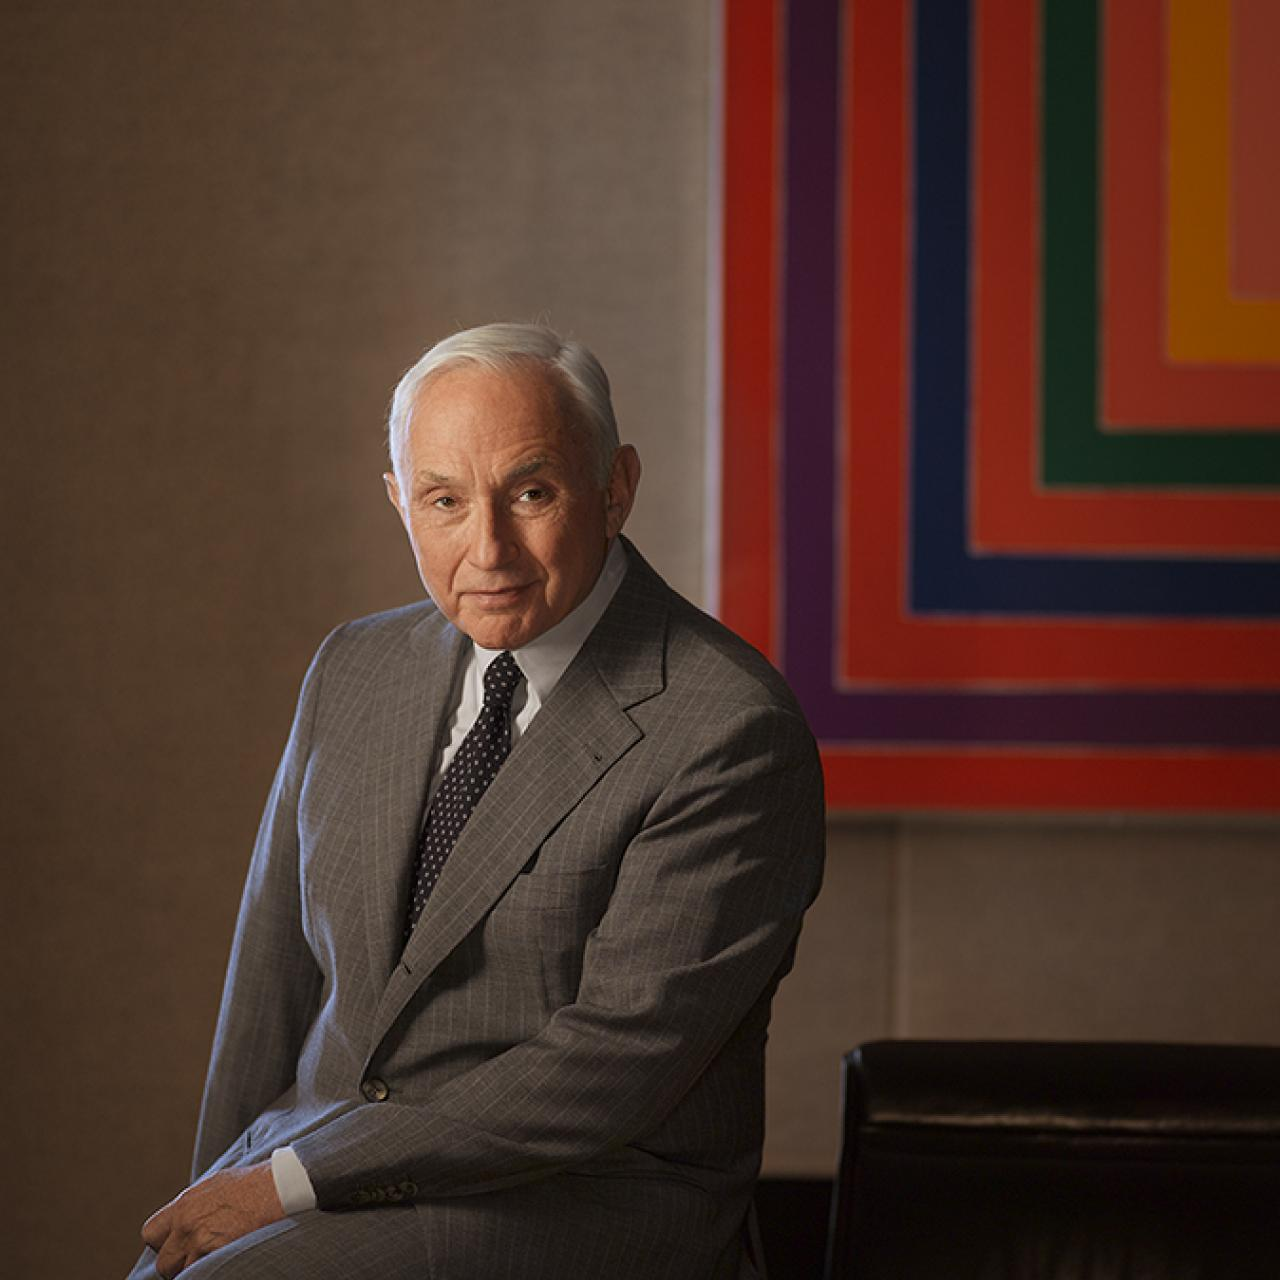 Image of Les Wexner, Chairman and CEO of L Brands, Inc.